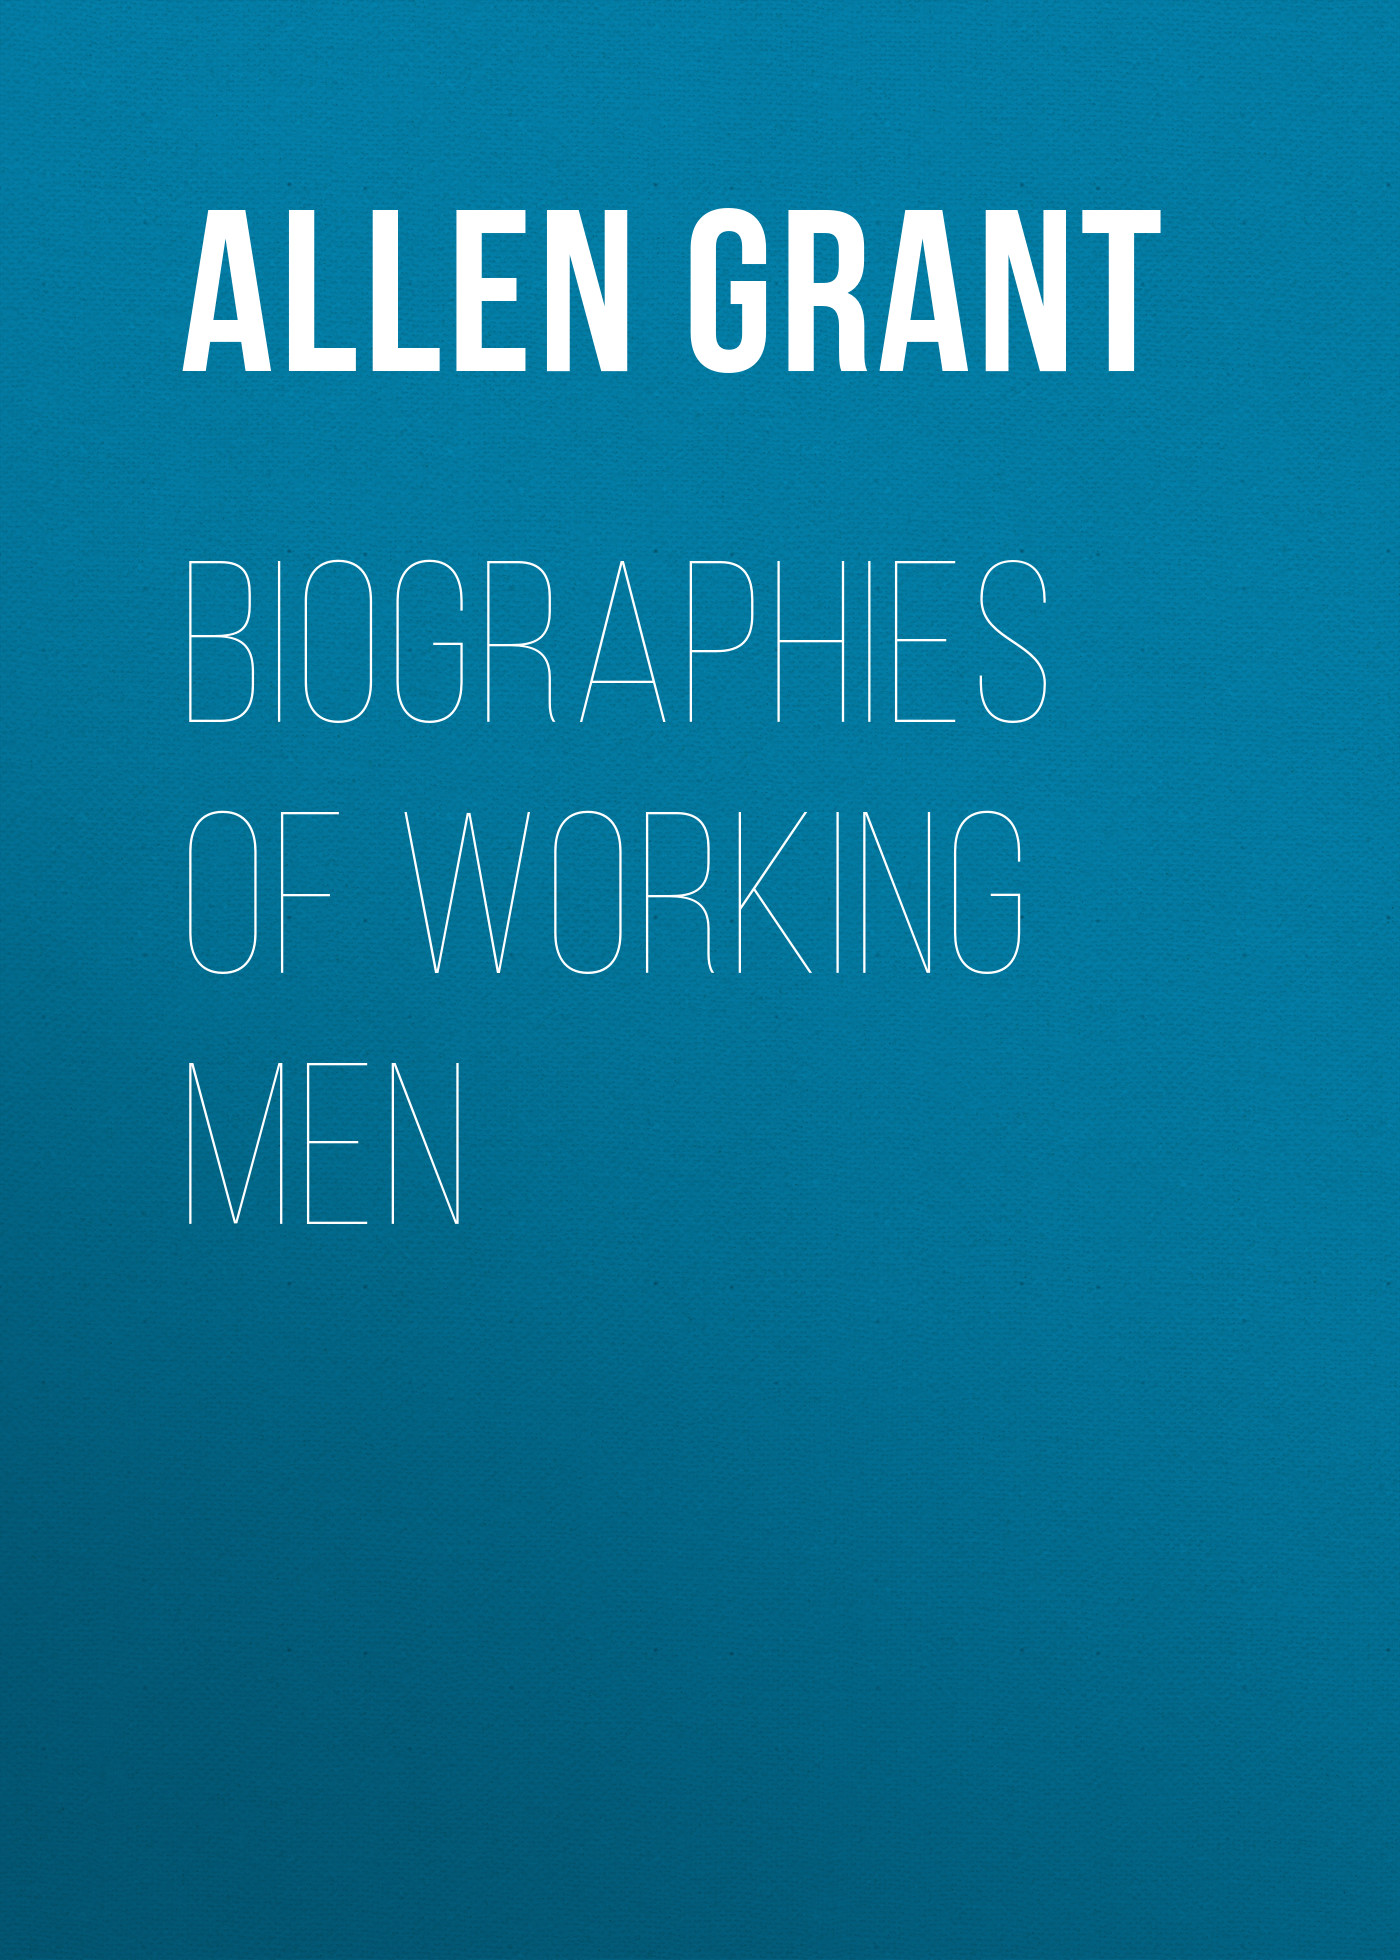 Allen Grant Biographies of Working Men